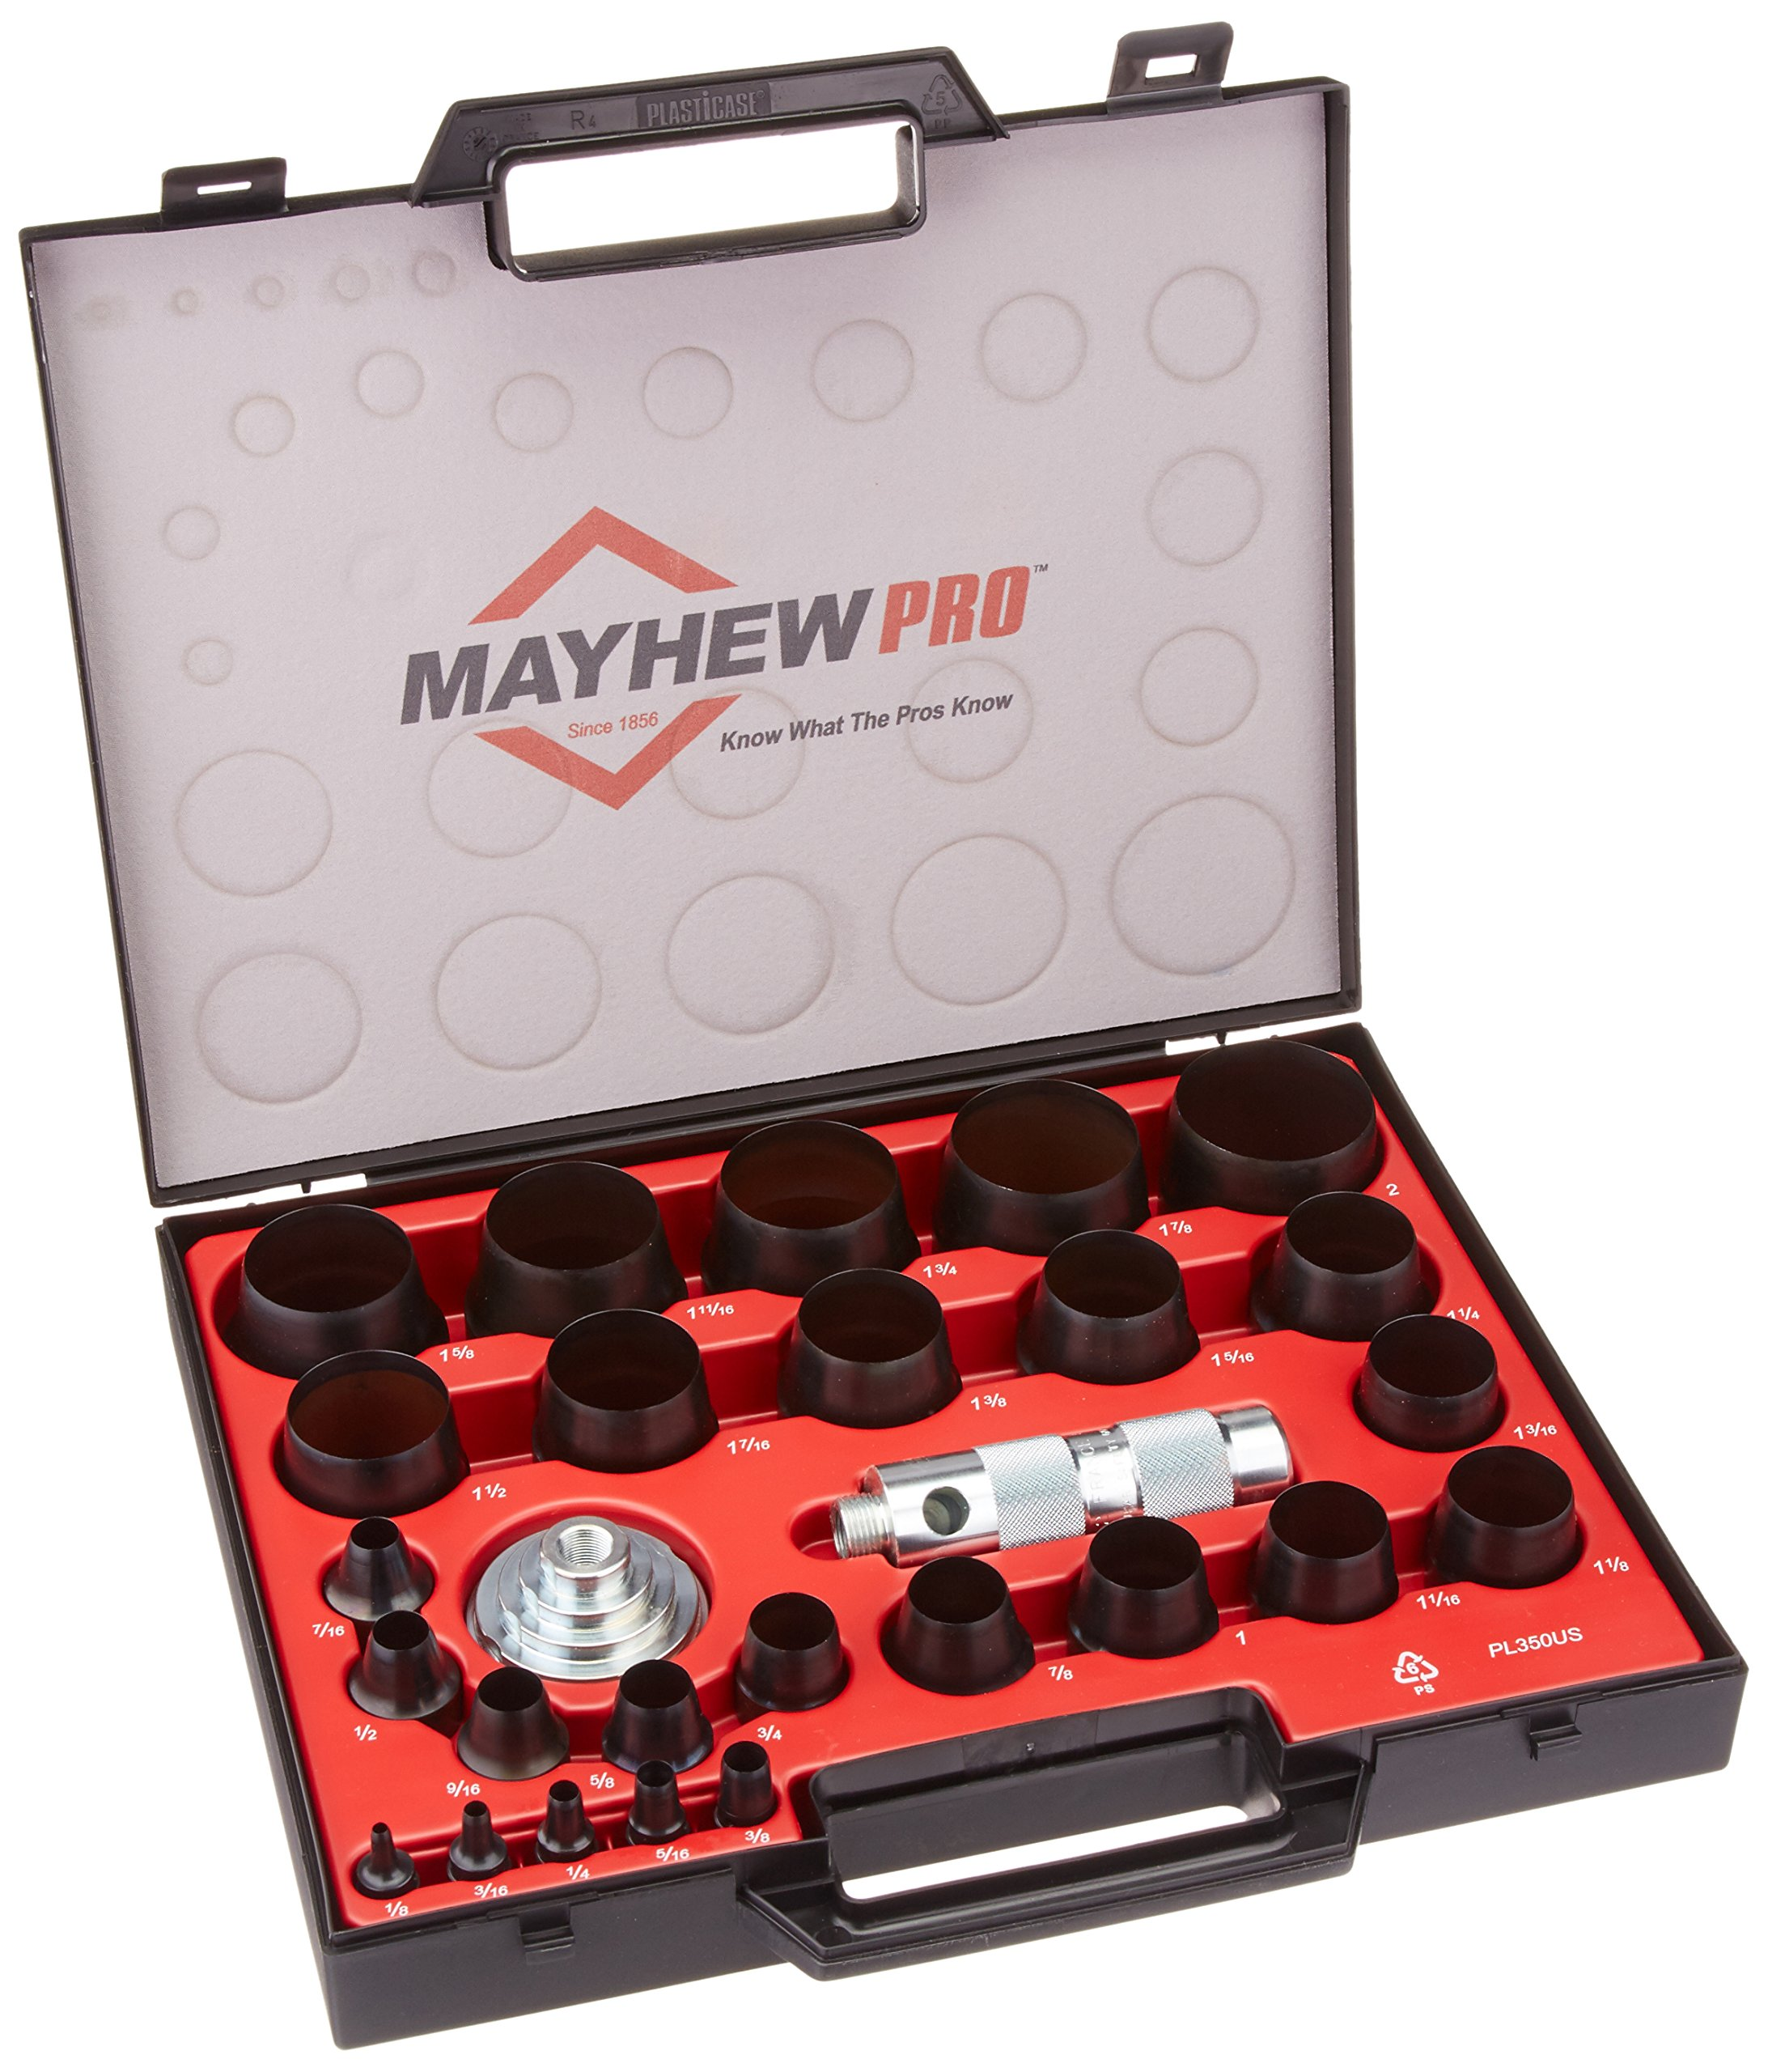 Mayhew Pro 66002 1/8-Inch to 2-Inch Imperial SAE Hollow Punch Set